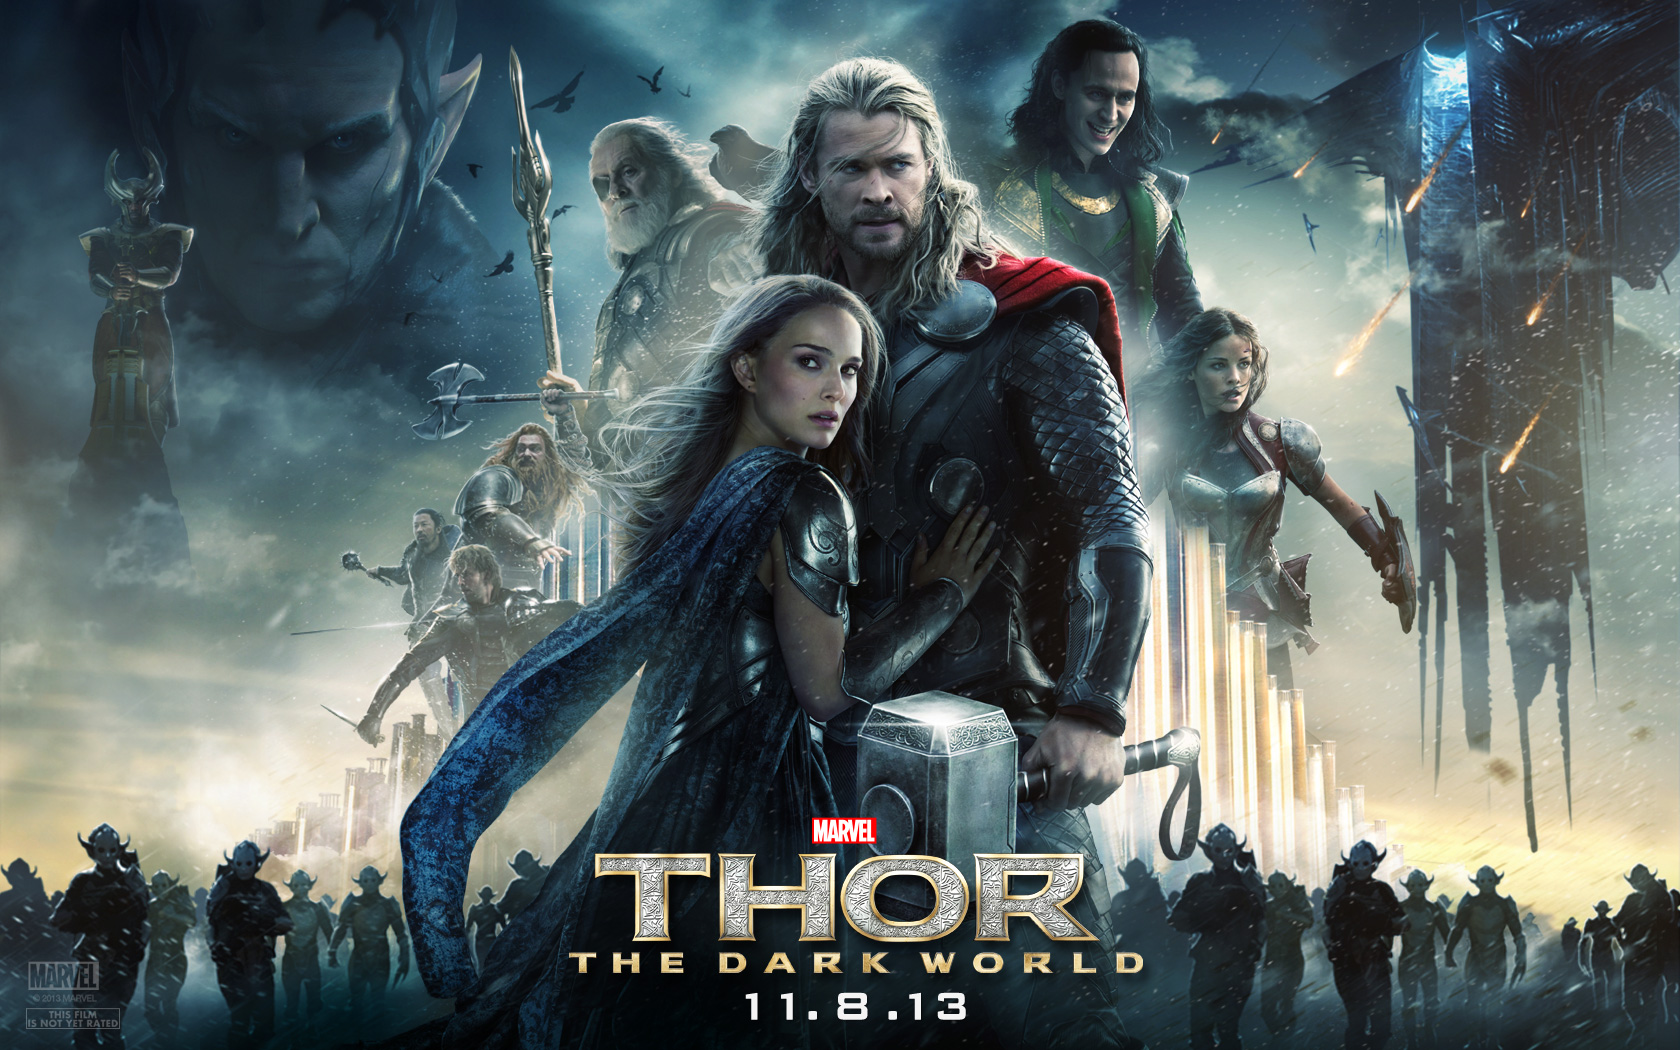 Thor The Dark World 2013 Movie